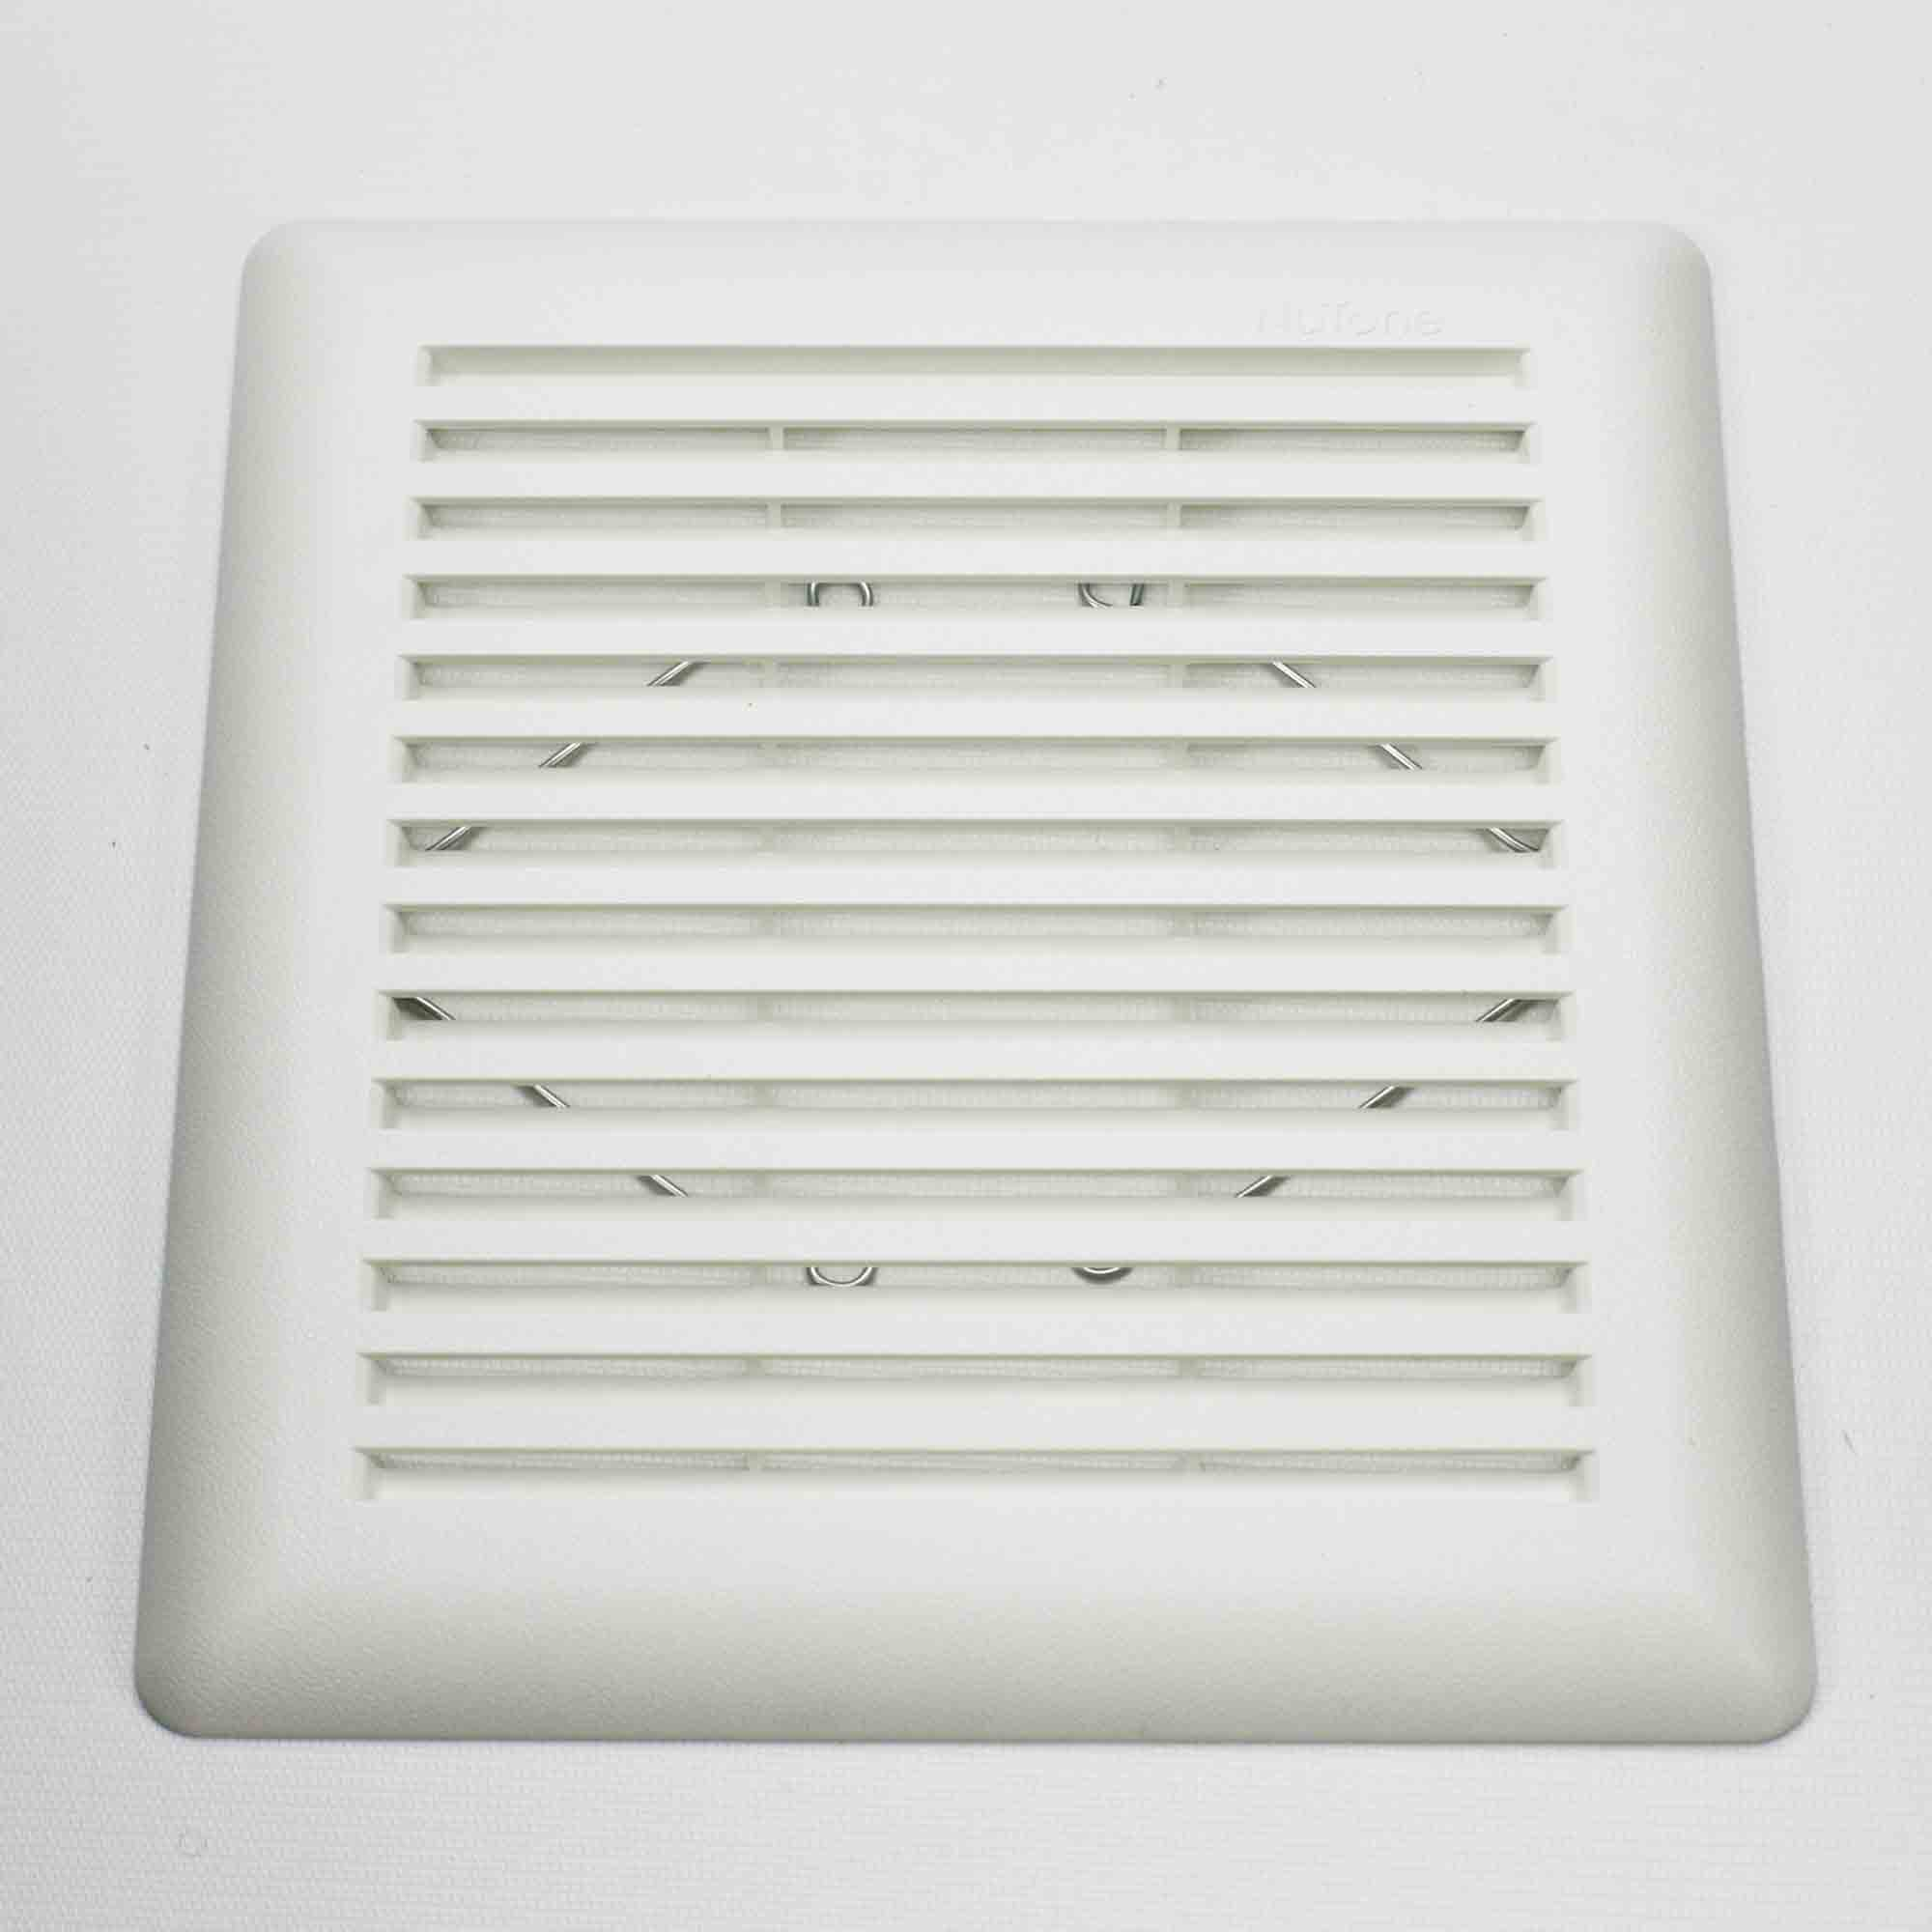 s97017068 for broan bathroom exhaust fan vent grille